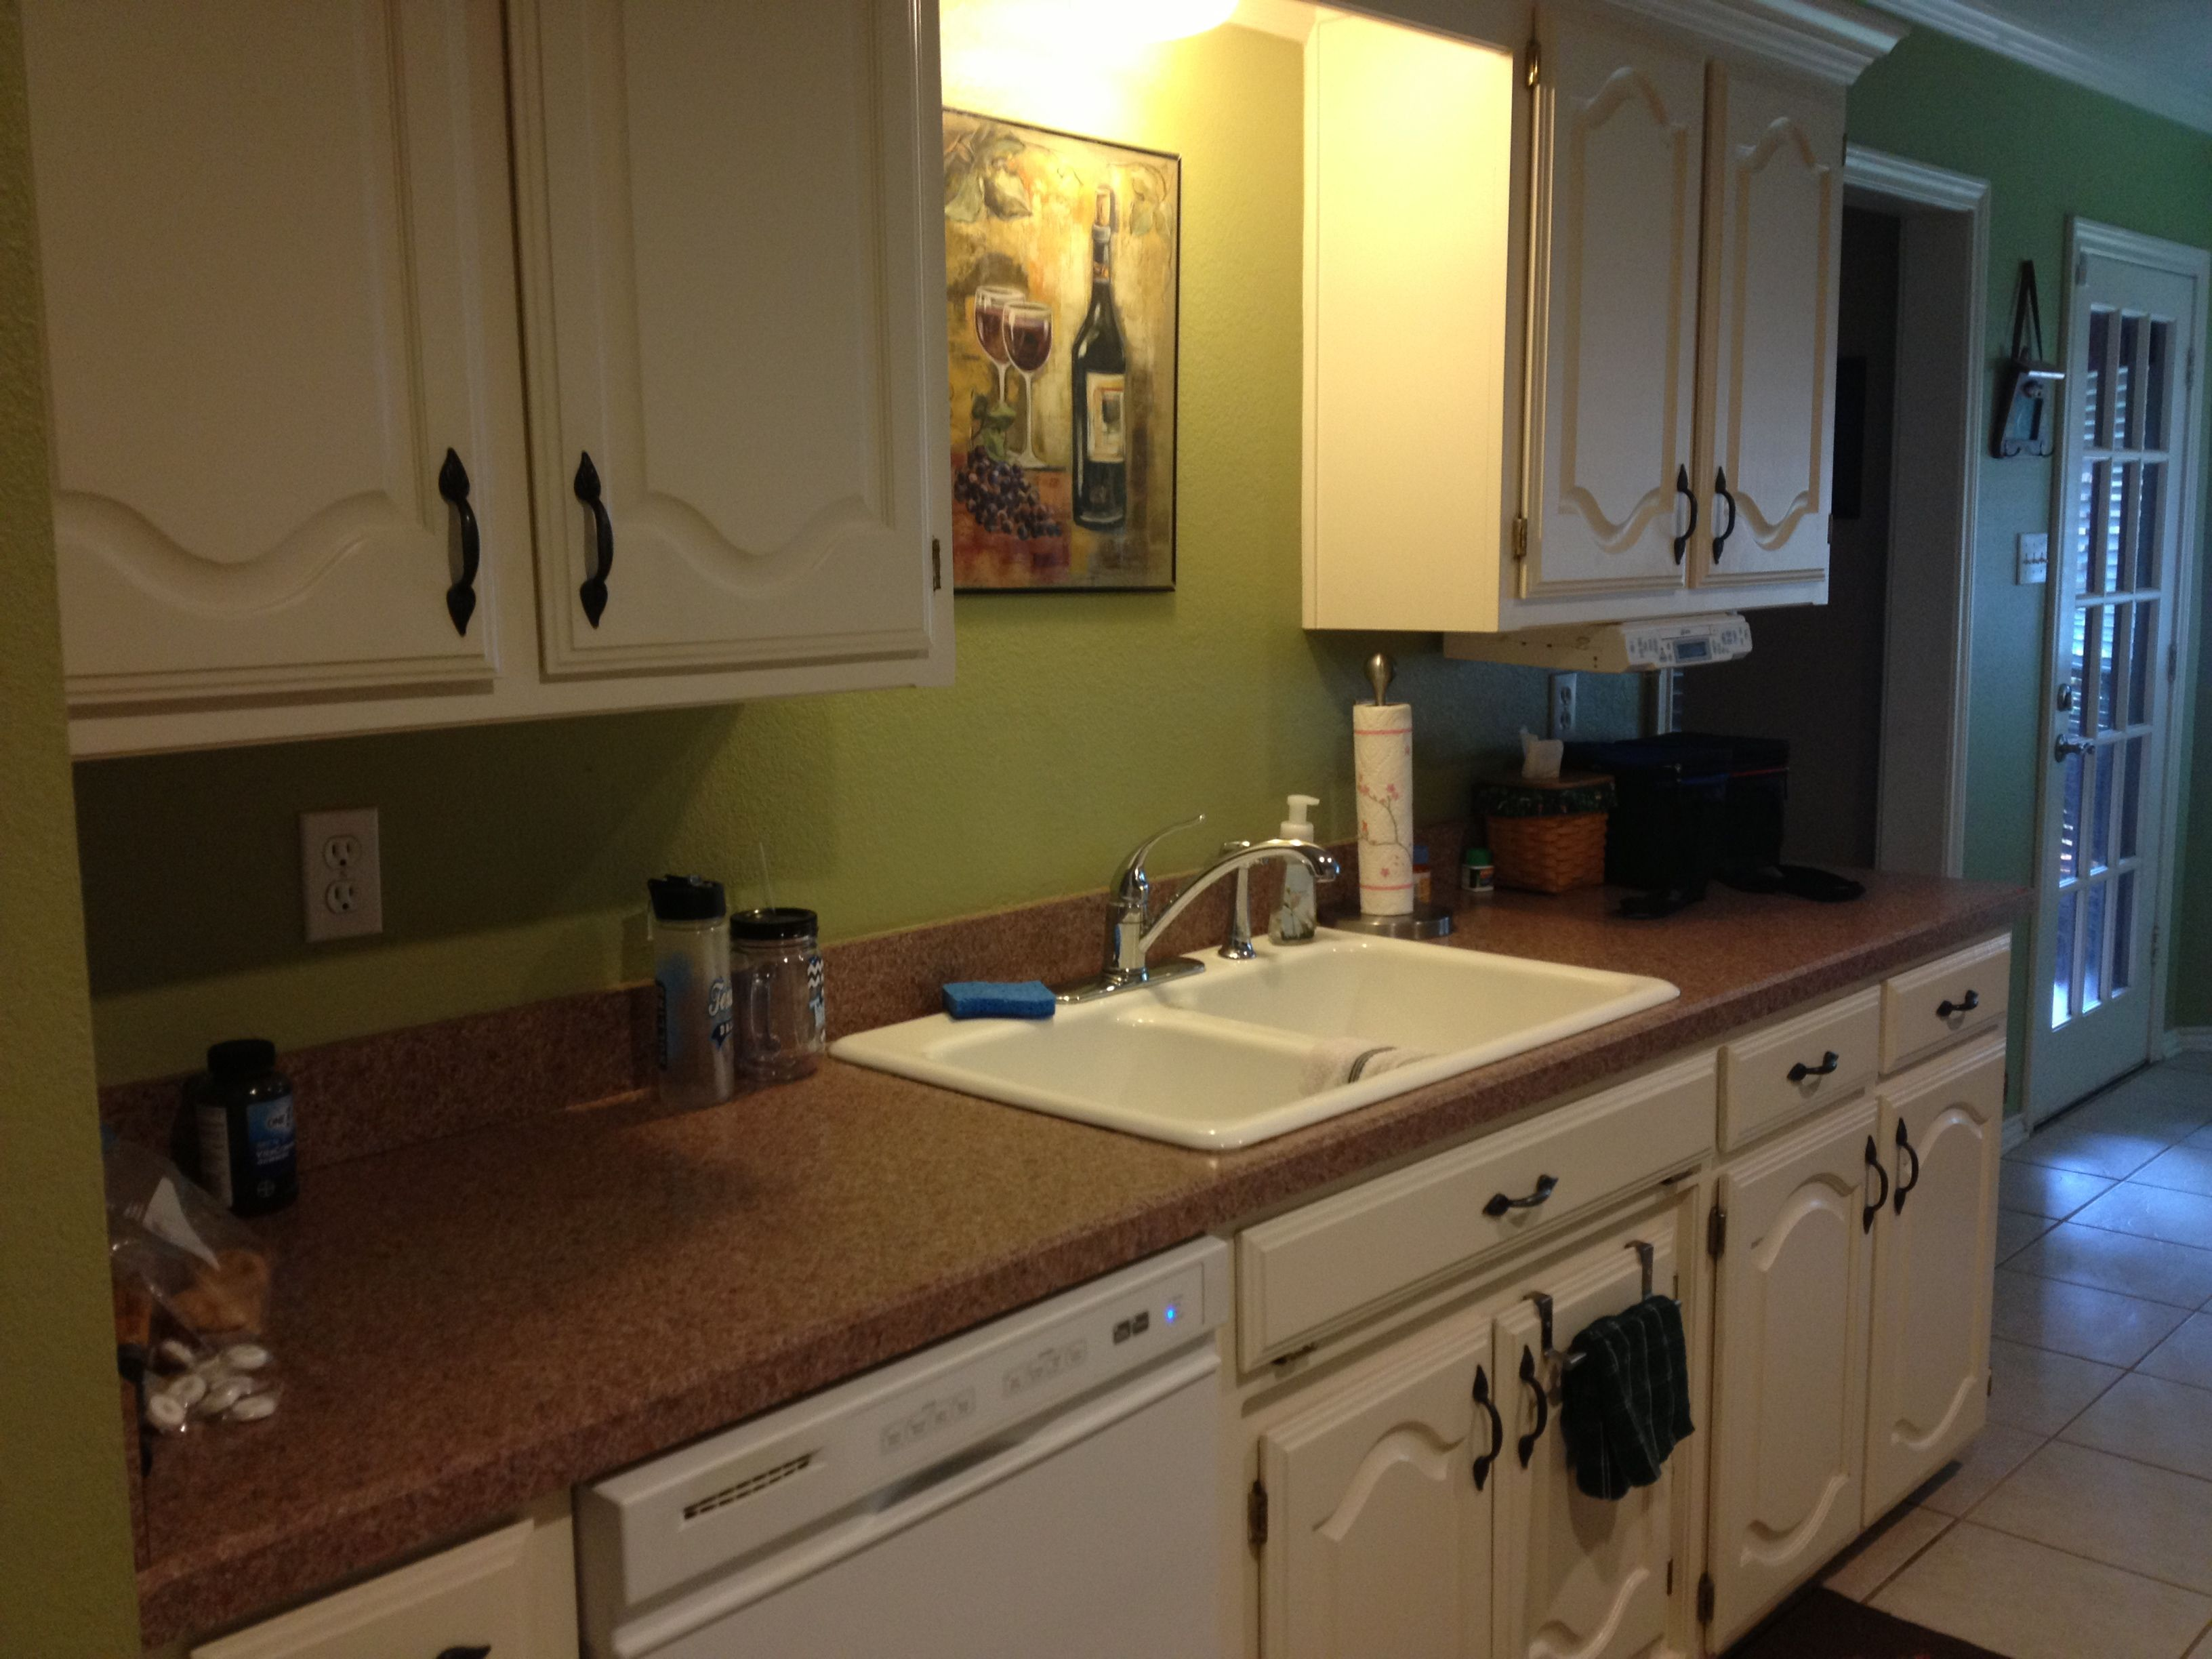 Debbieus kitchen kitchens pinterest kitchens